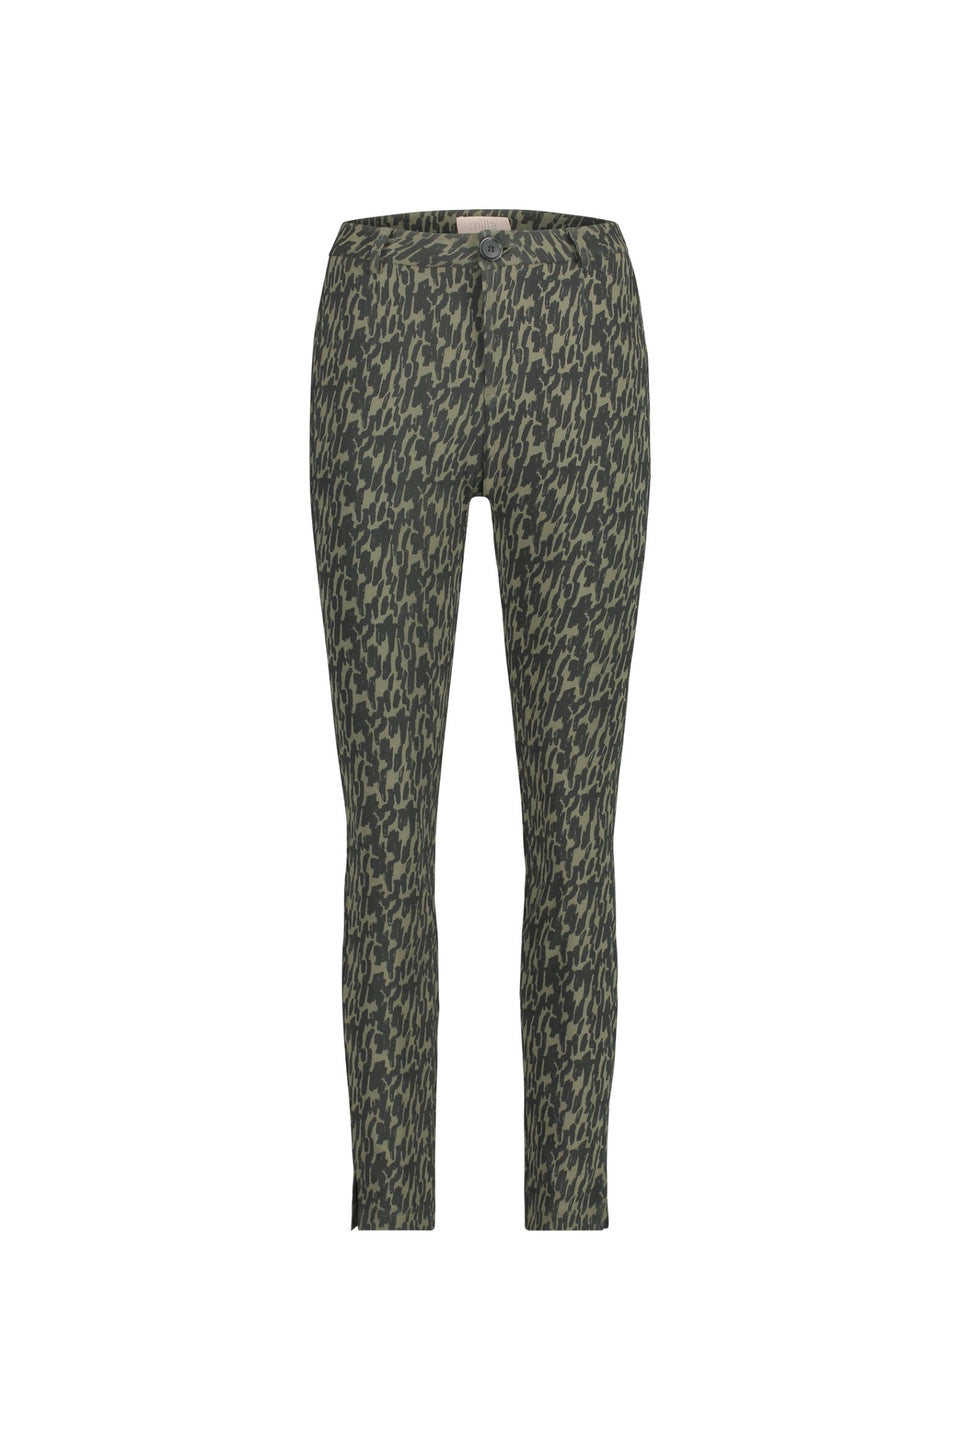 Paris Pants - Army Green Aop